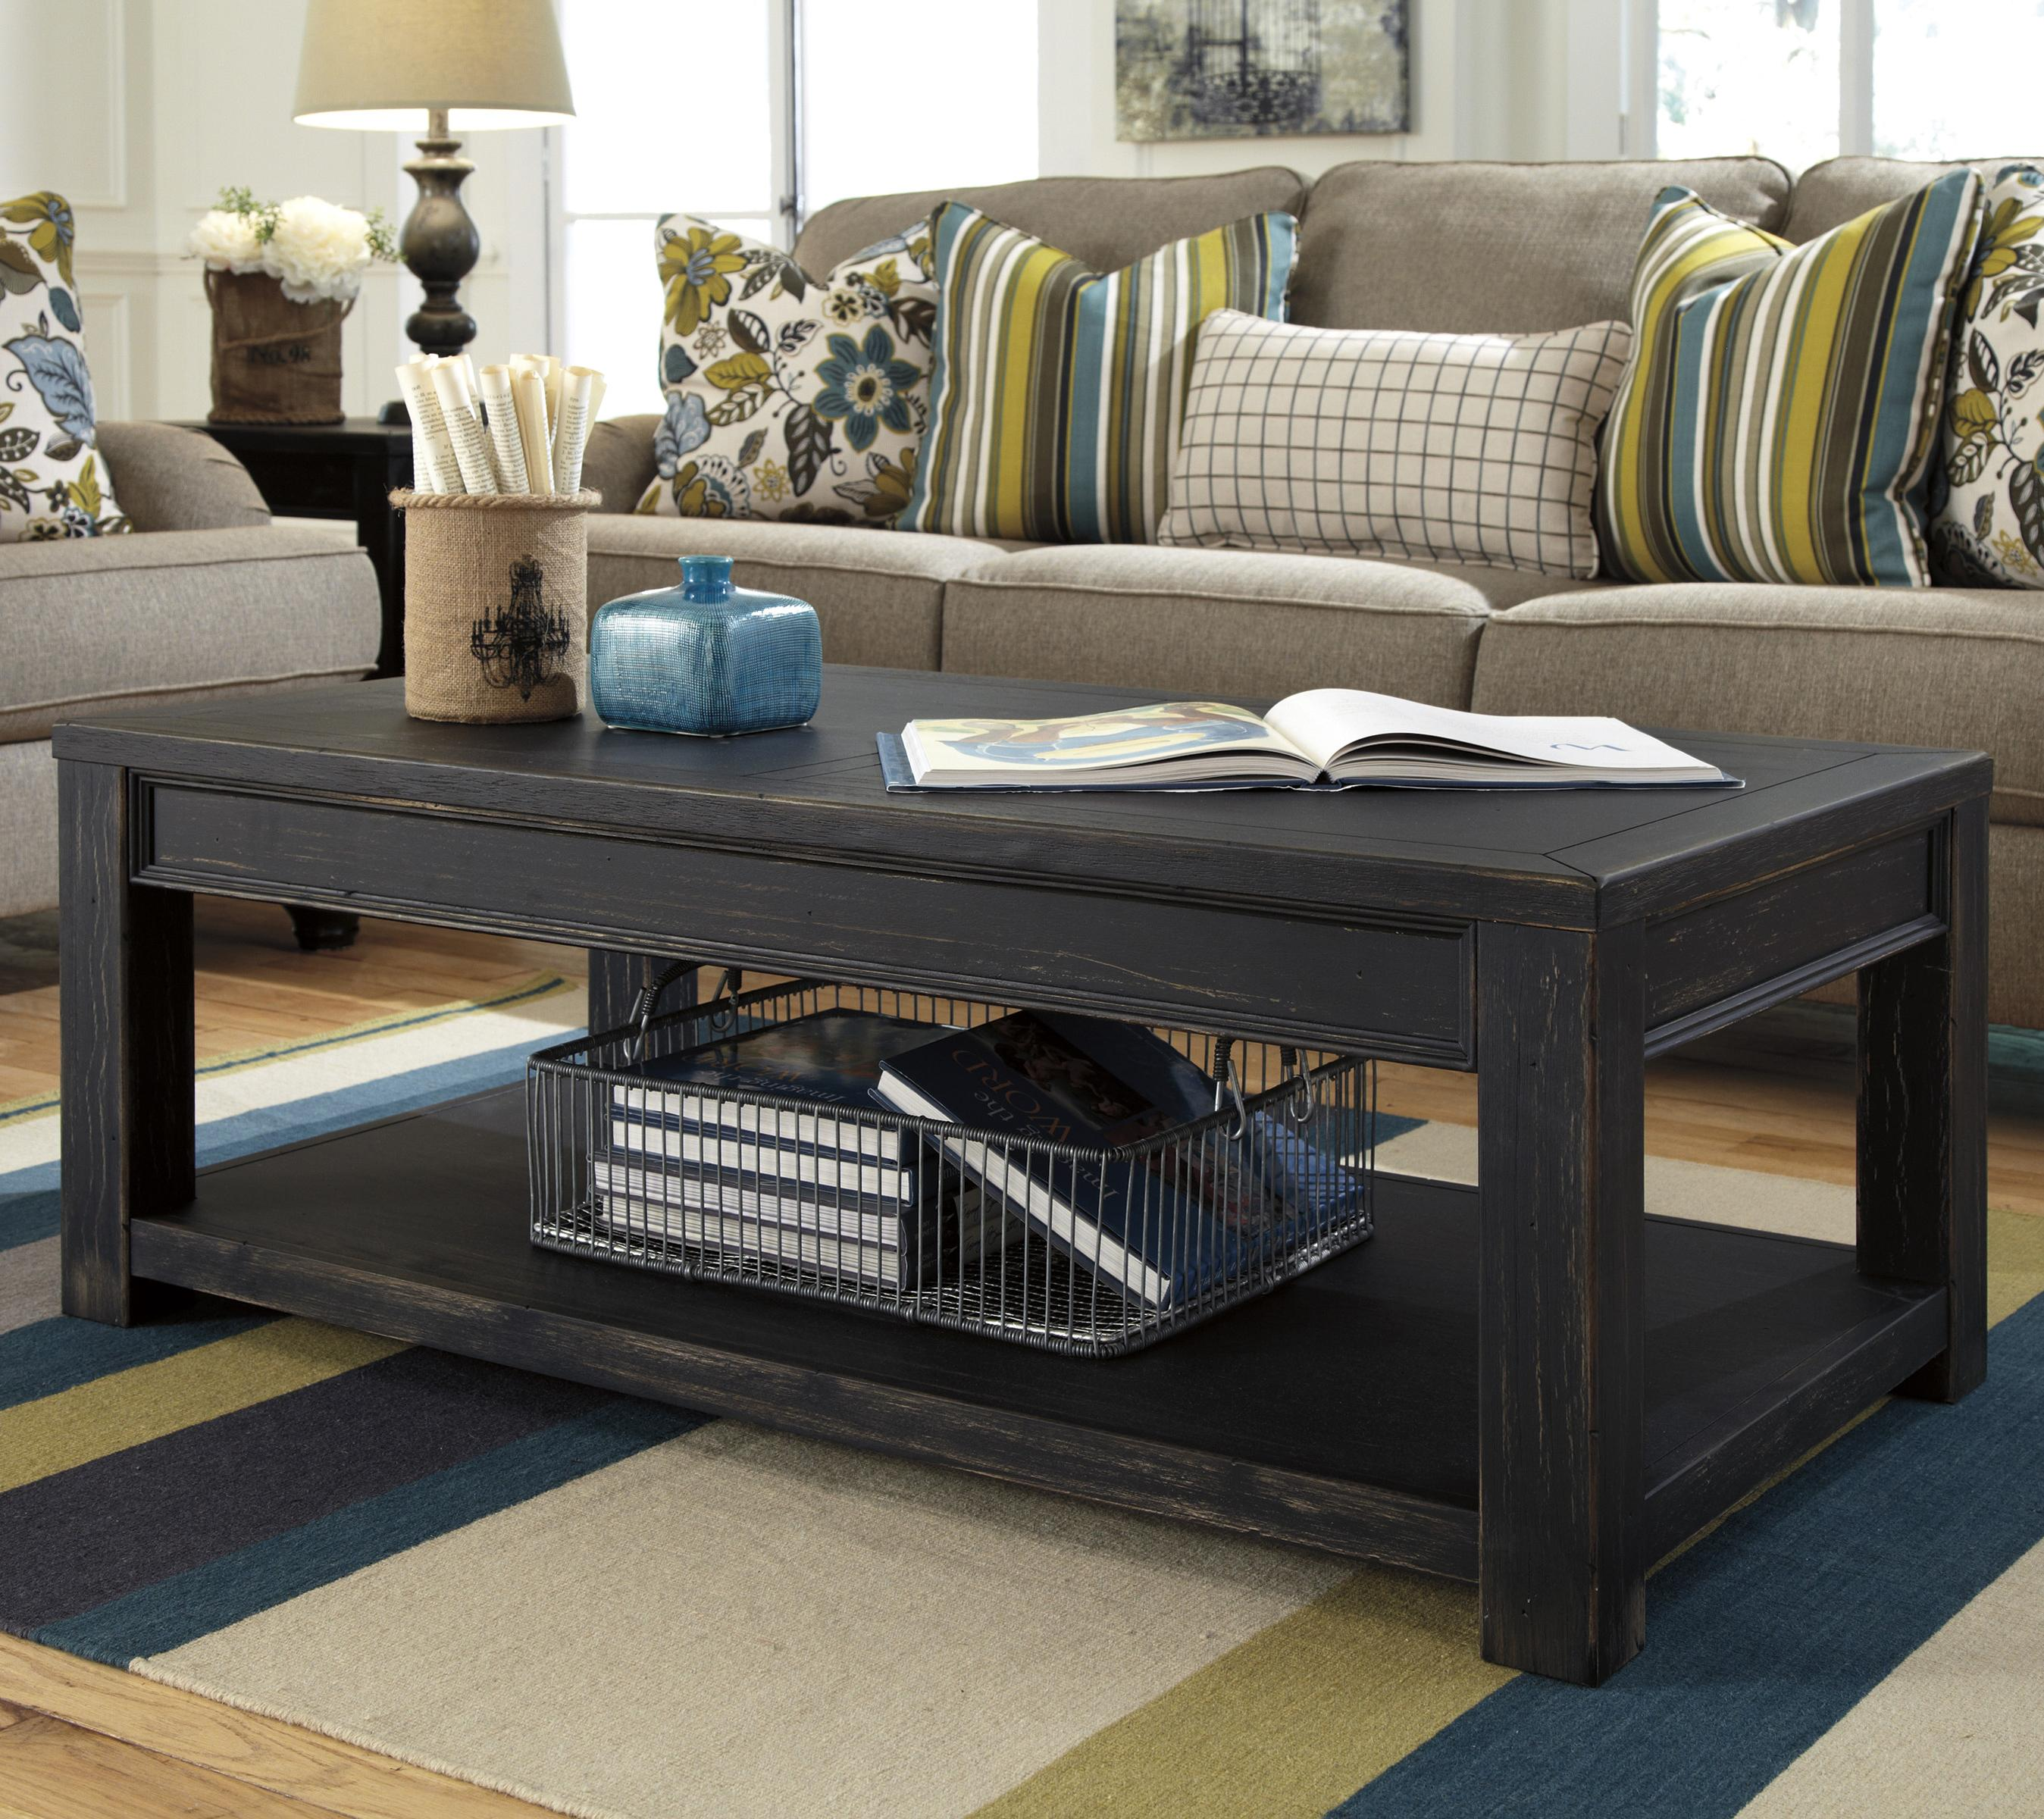 Ashley Furniture Distressed Coffee Table